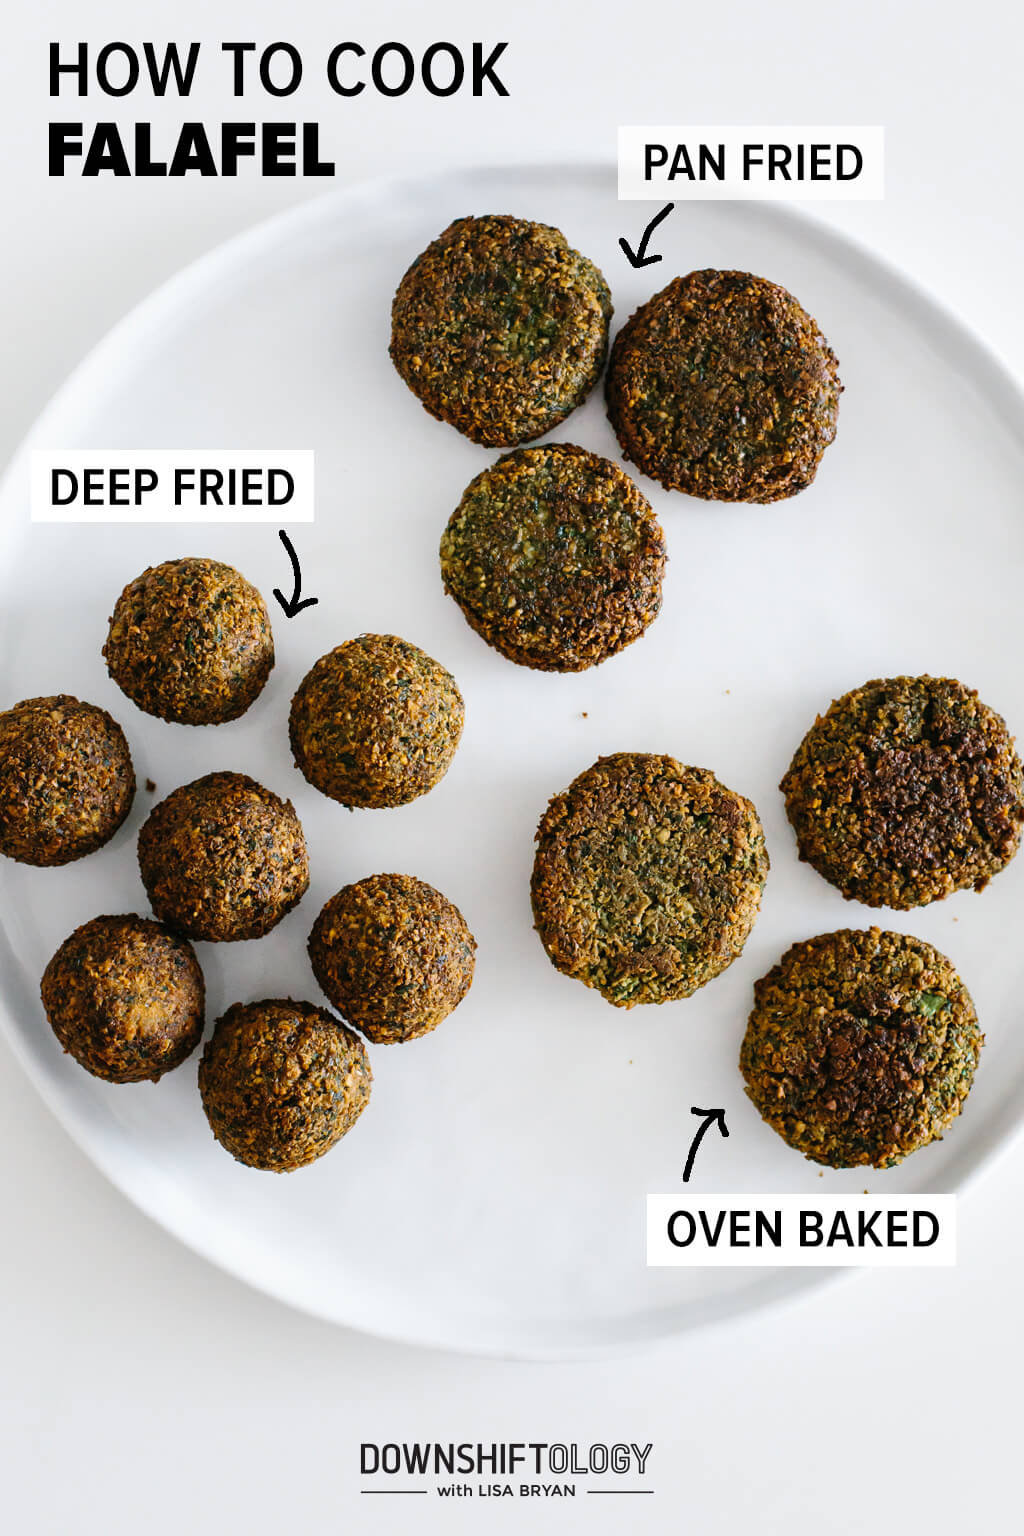 How to cook falafel three different ways, deep fried, pan fried and baked.